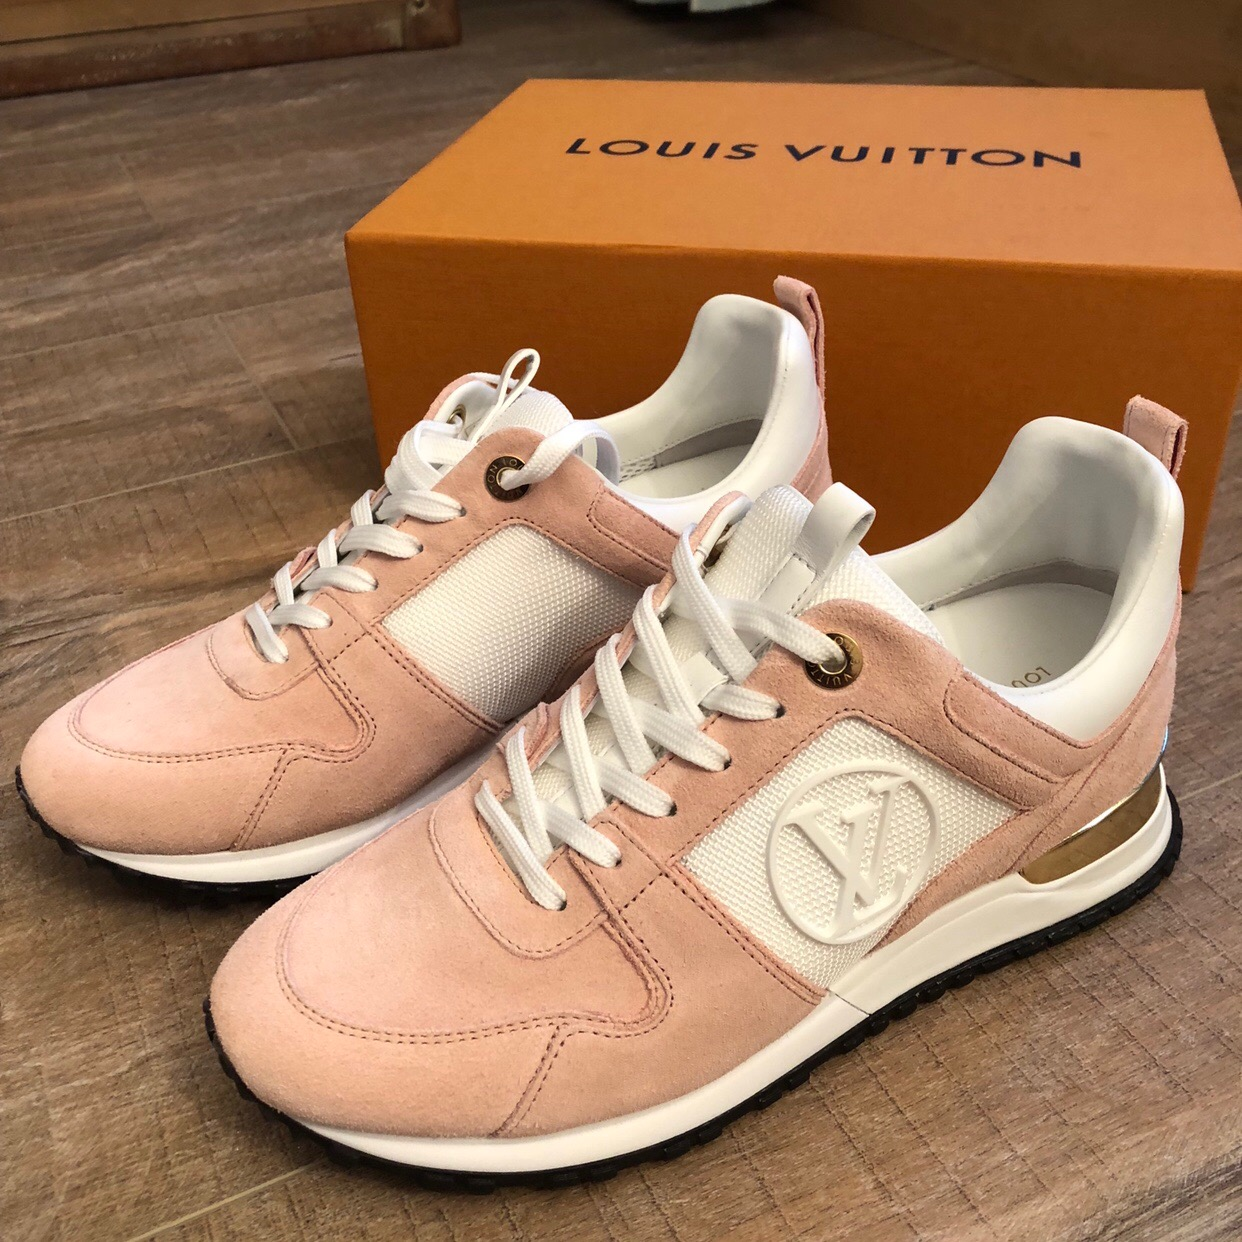 4e75c62324f7 Louis Vuitton Pink Suede Run Away Trainers - Lulu s Boutique